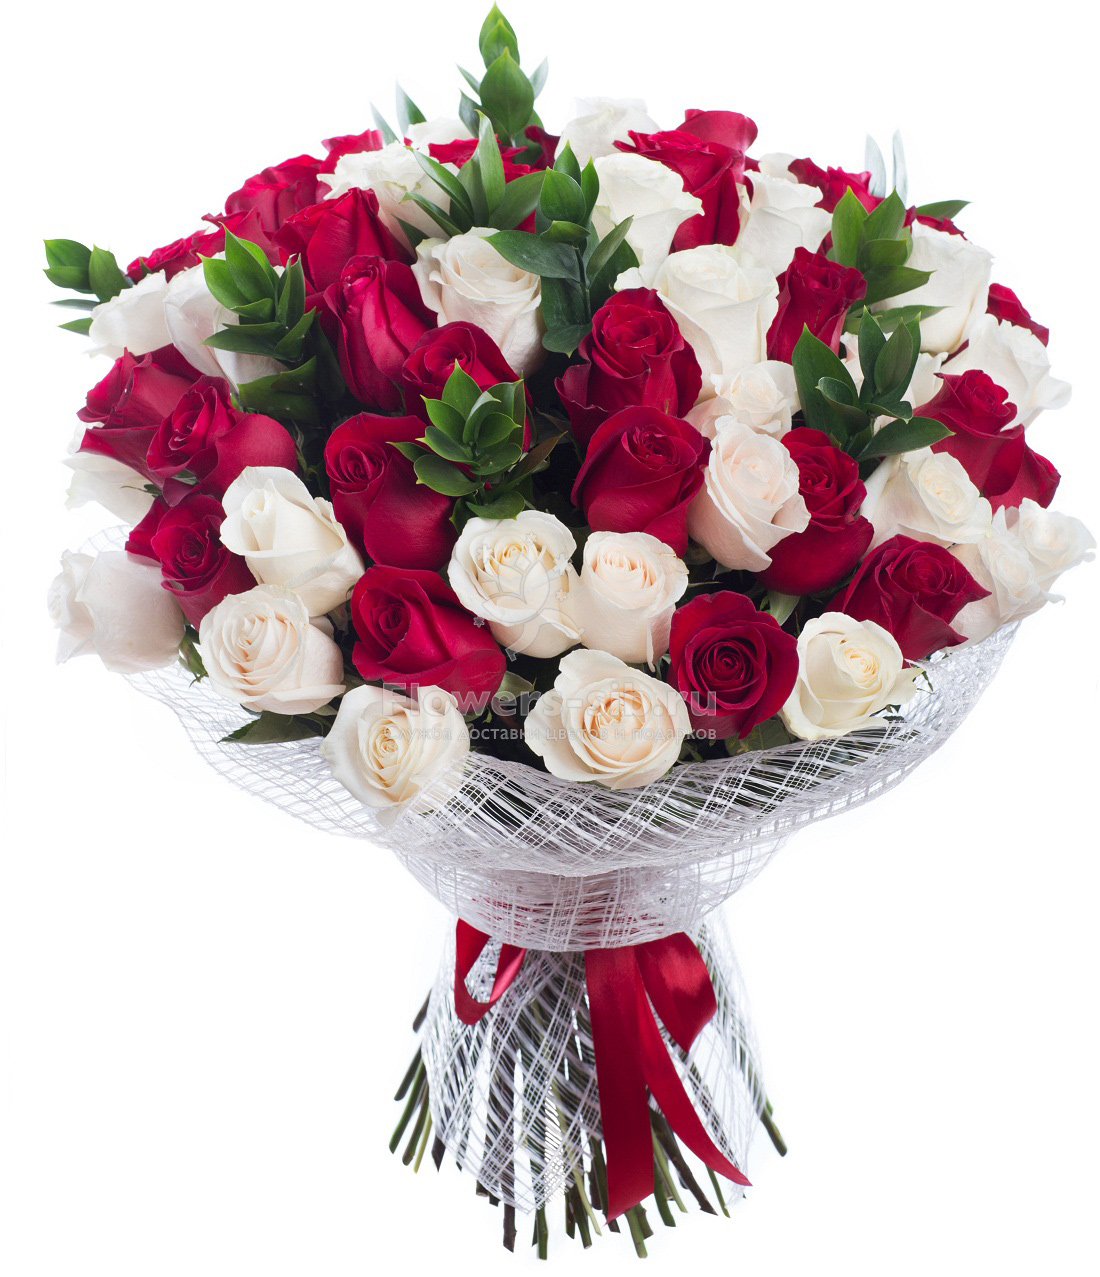 BOUQUET OF 61 ROSES at the price 6590 - efficient delivery of ...